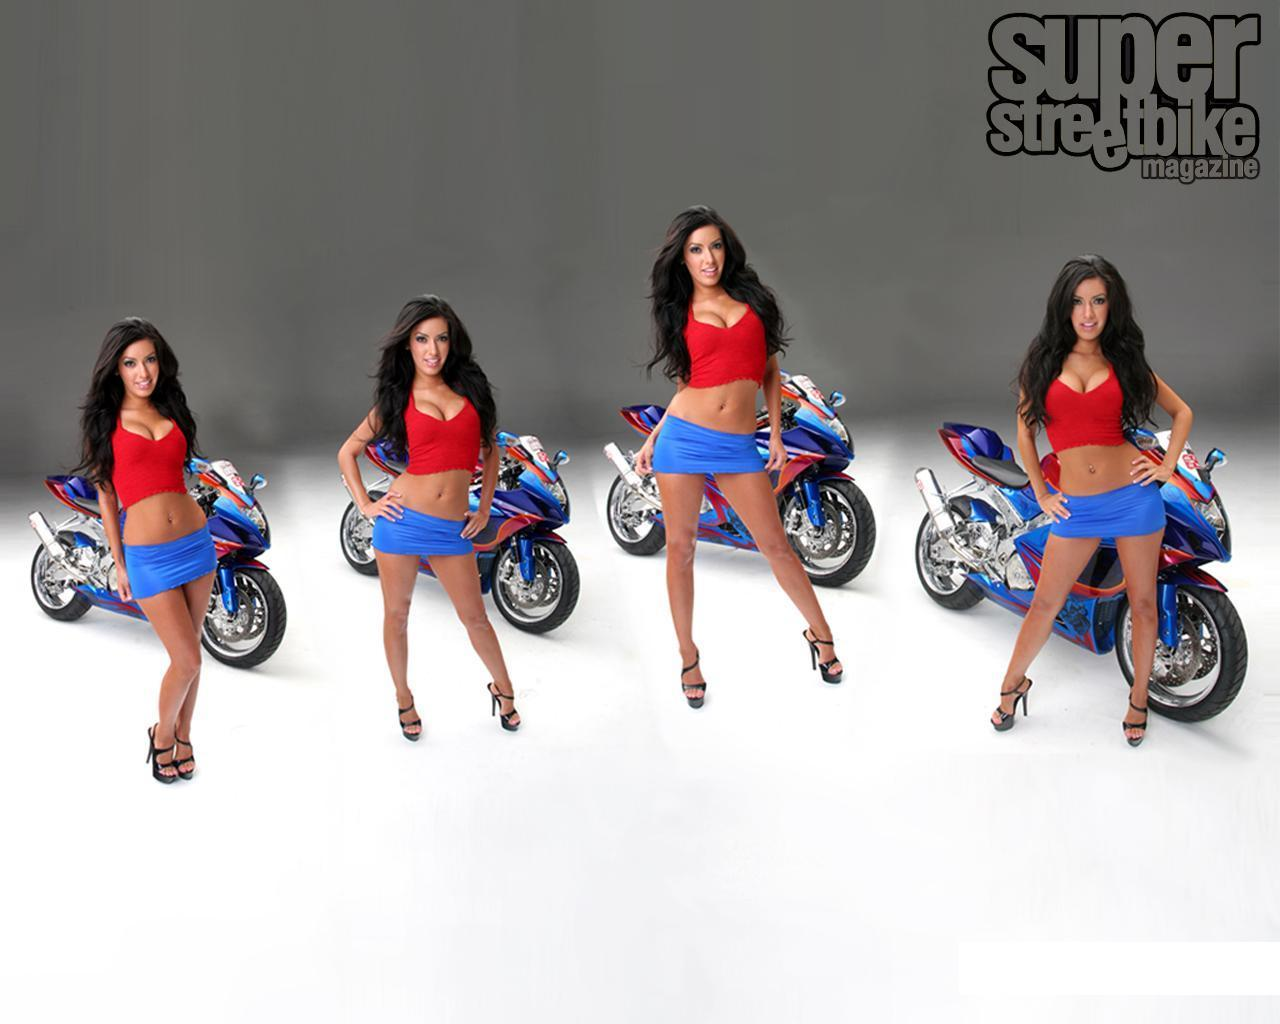 motorcycle girls wallpapers wallpapersafari